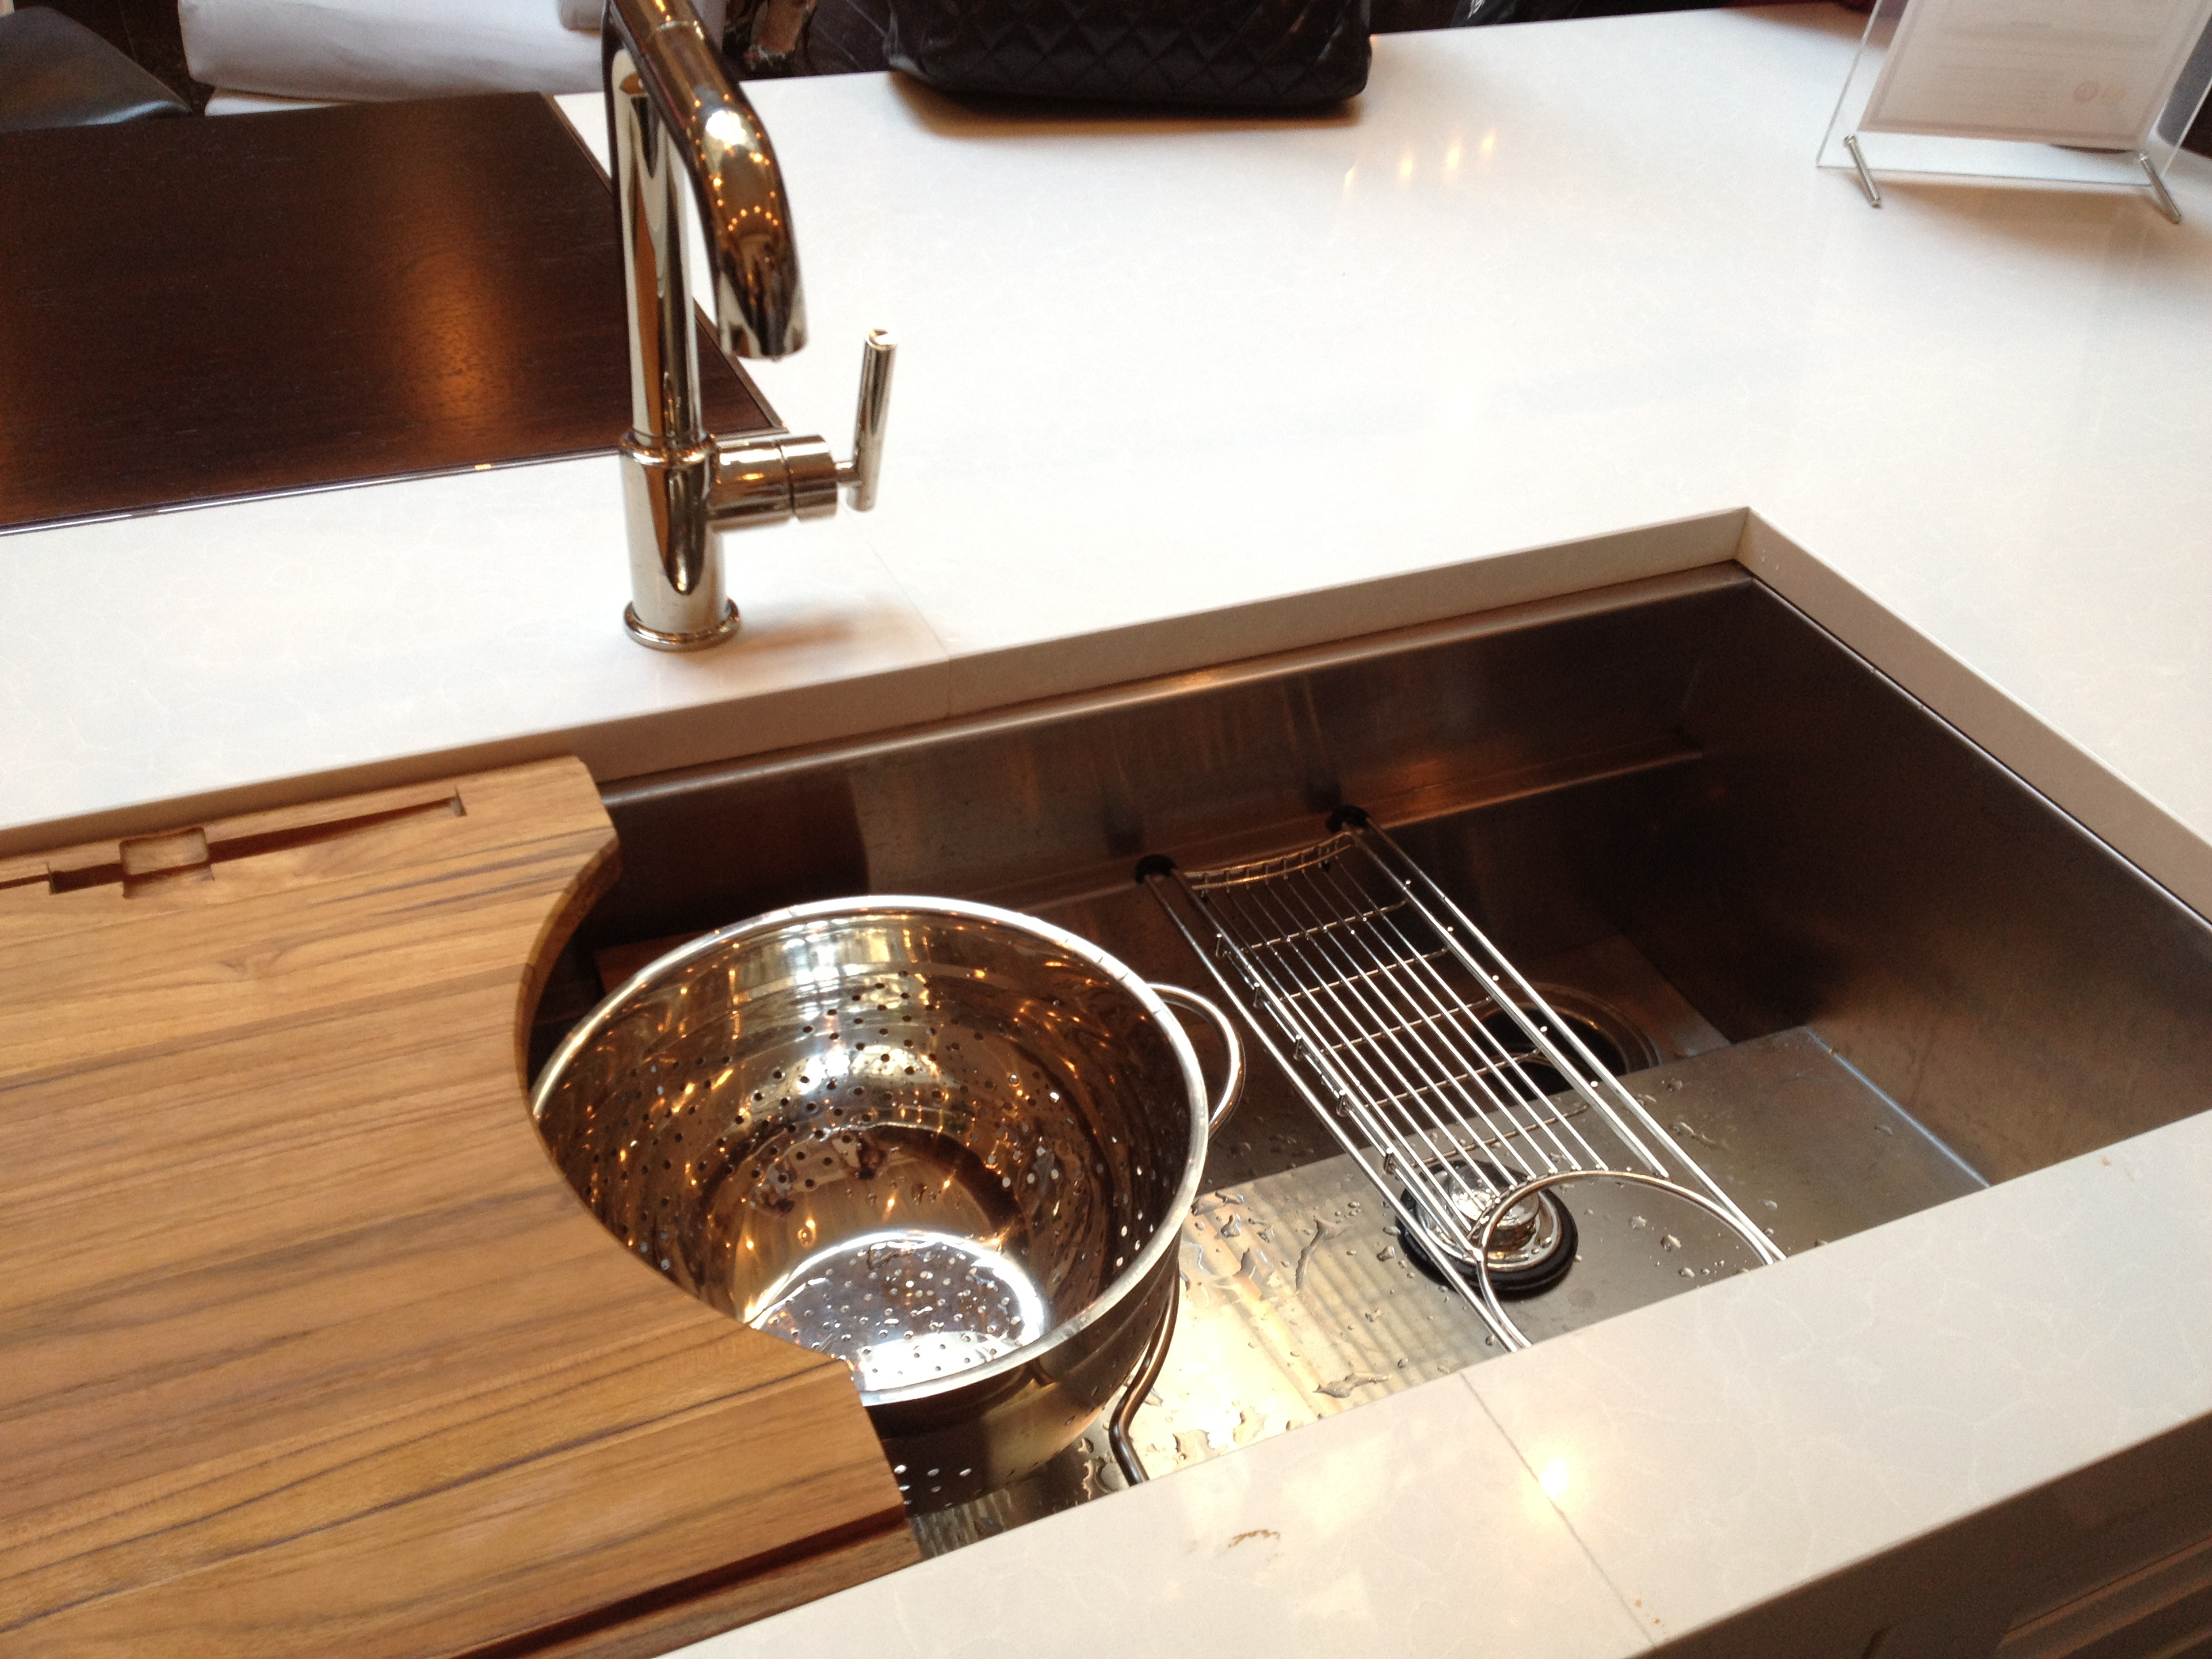 Superb Kitchen Sink Board #6: Elkay Kitchen Sink Stainless Steel Sinks